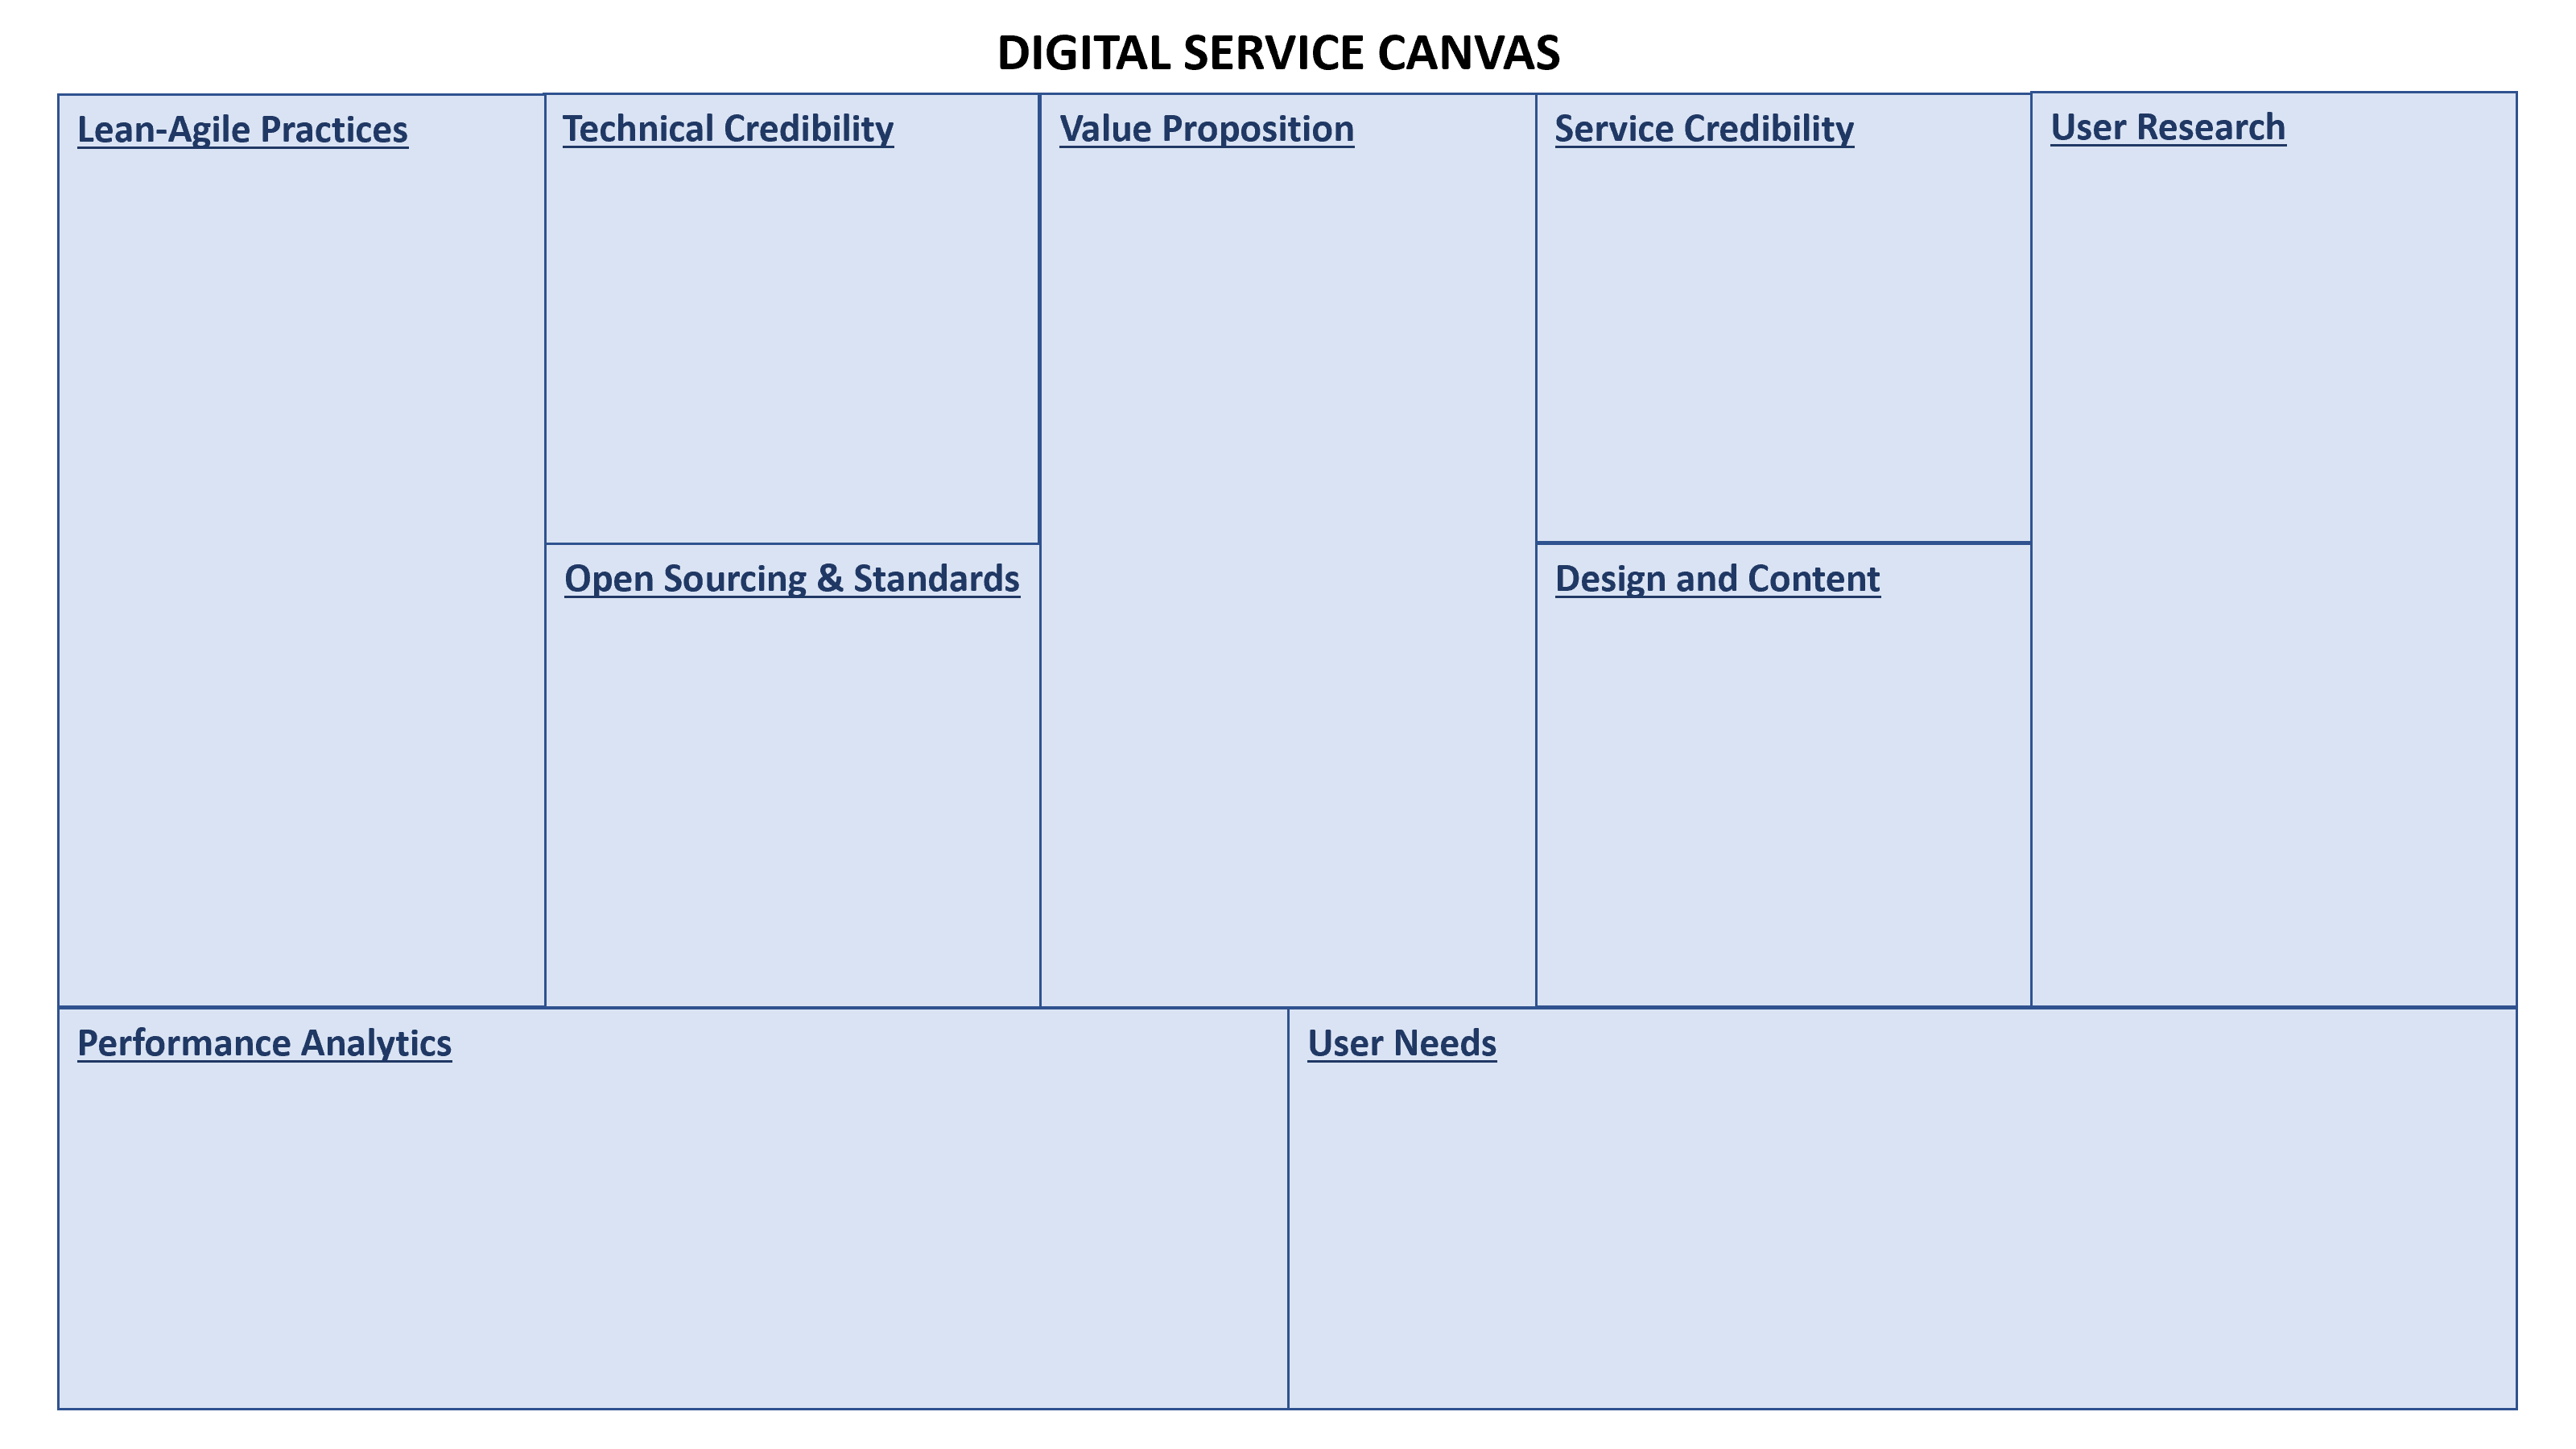 Digital Service Canvas